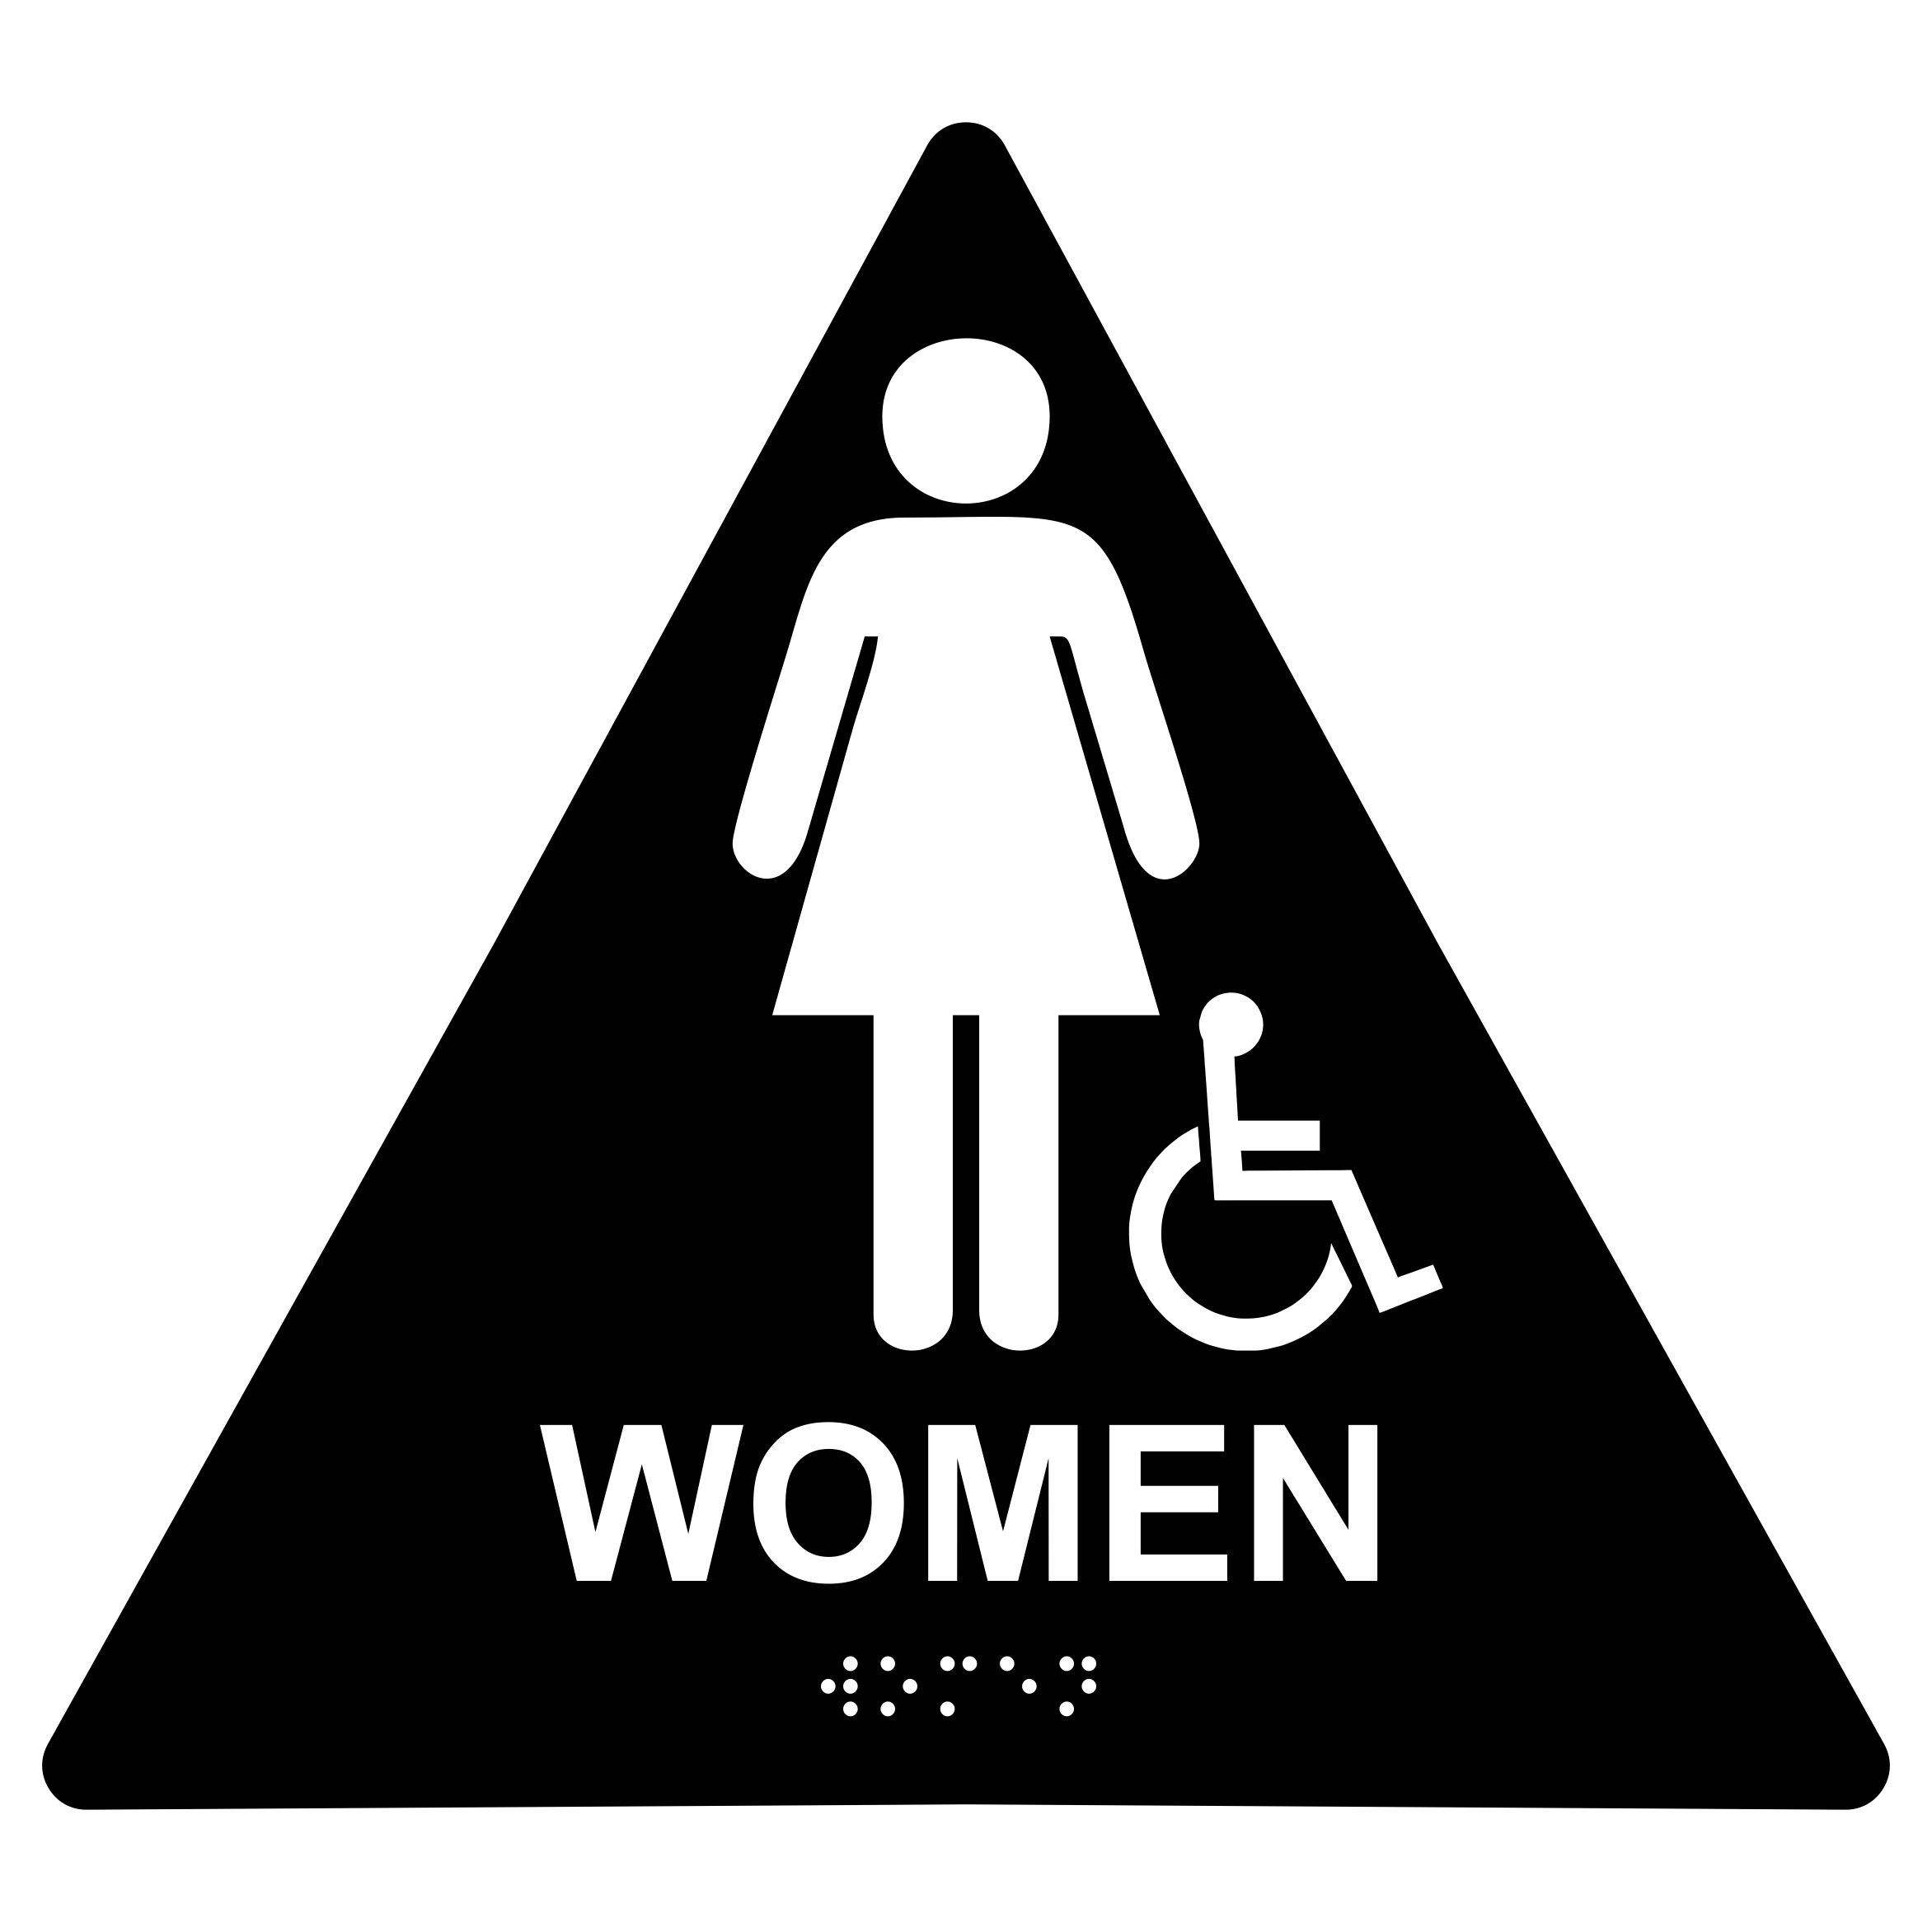 Women With Wheelchair Symbol Restroom Triangle Economy Ada Signs With Braille Winmark Stamp